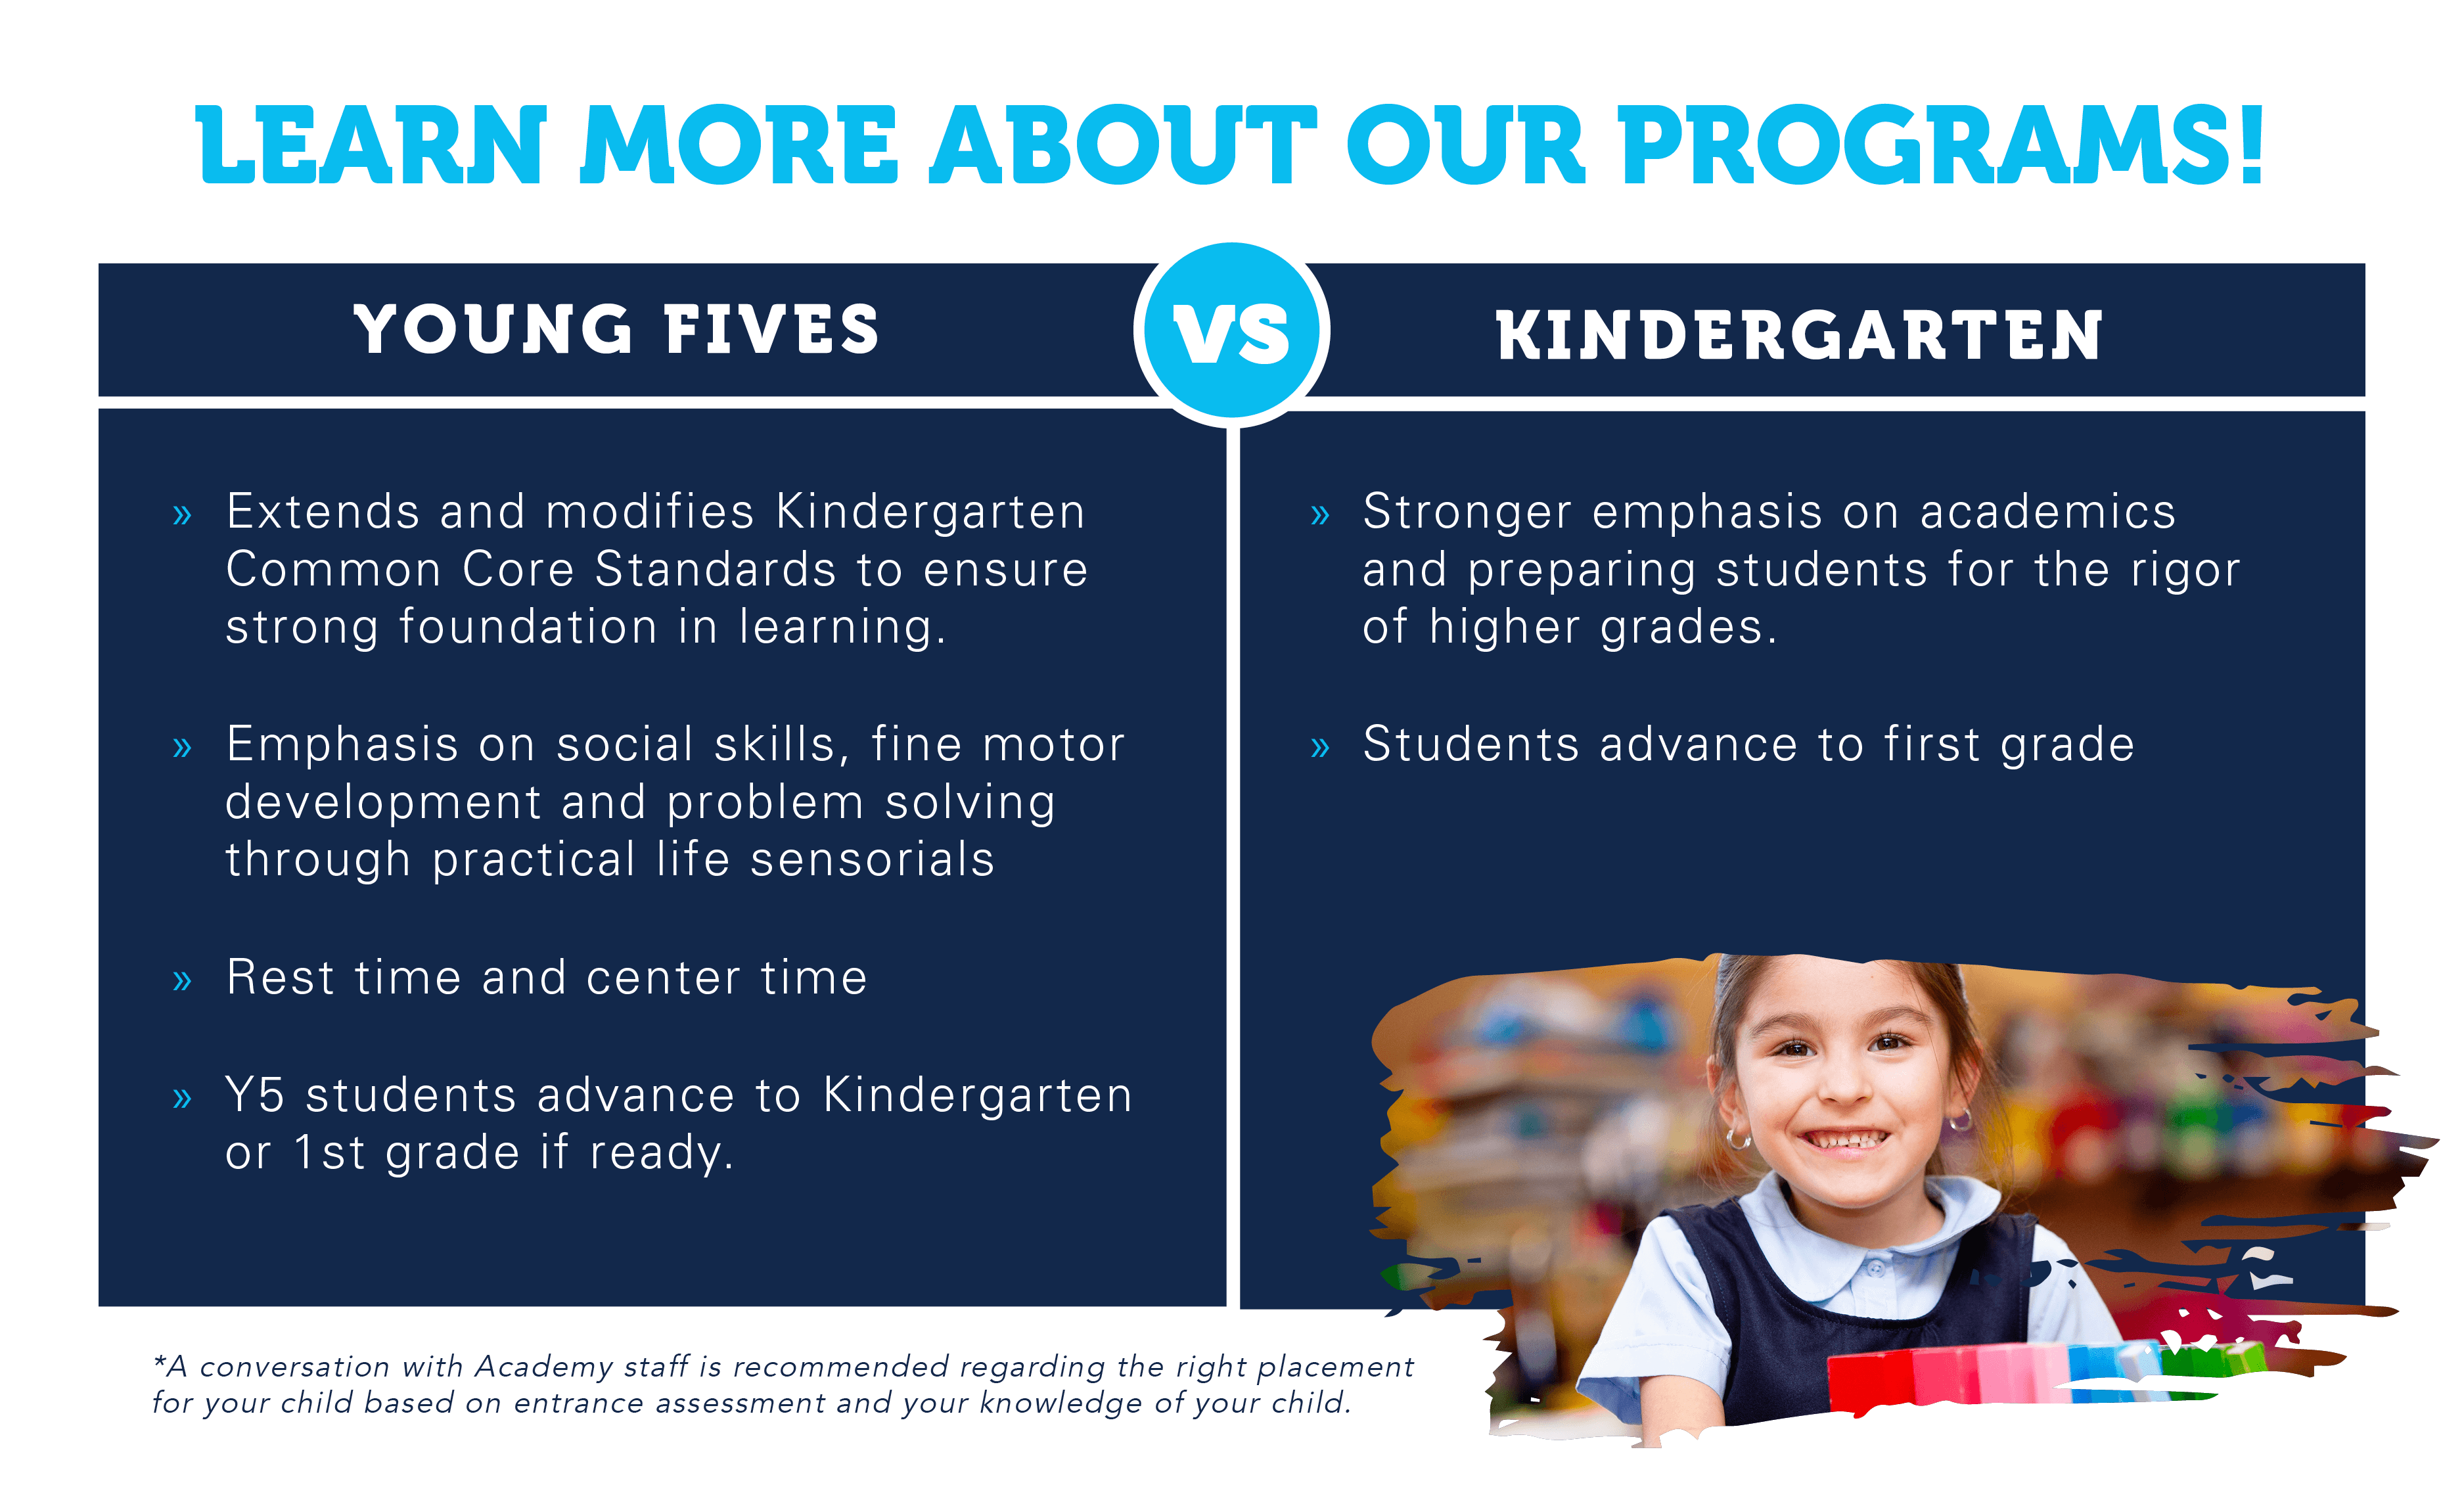 Comparison image for Young 5s and Kindergarten